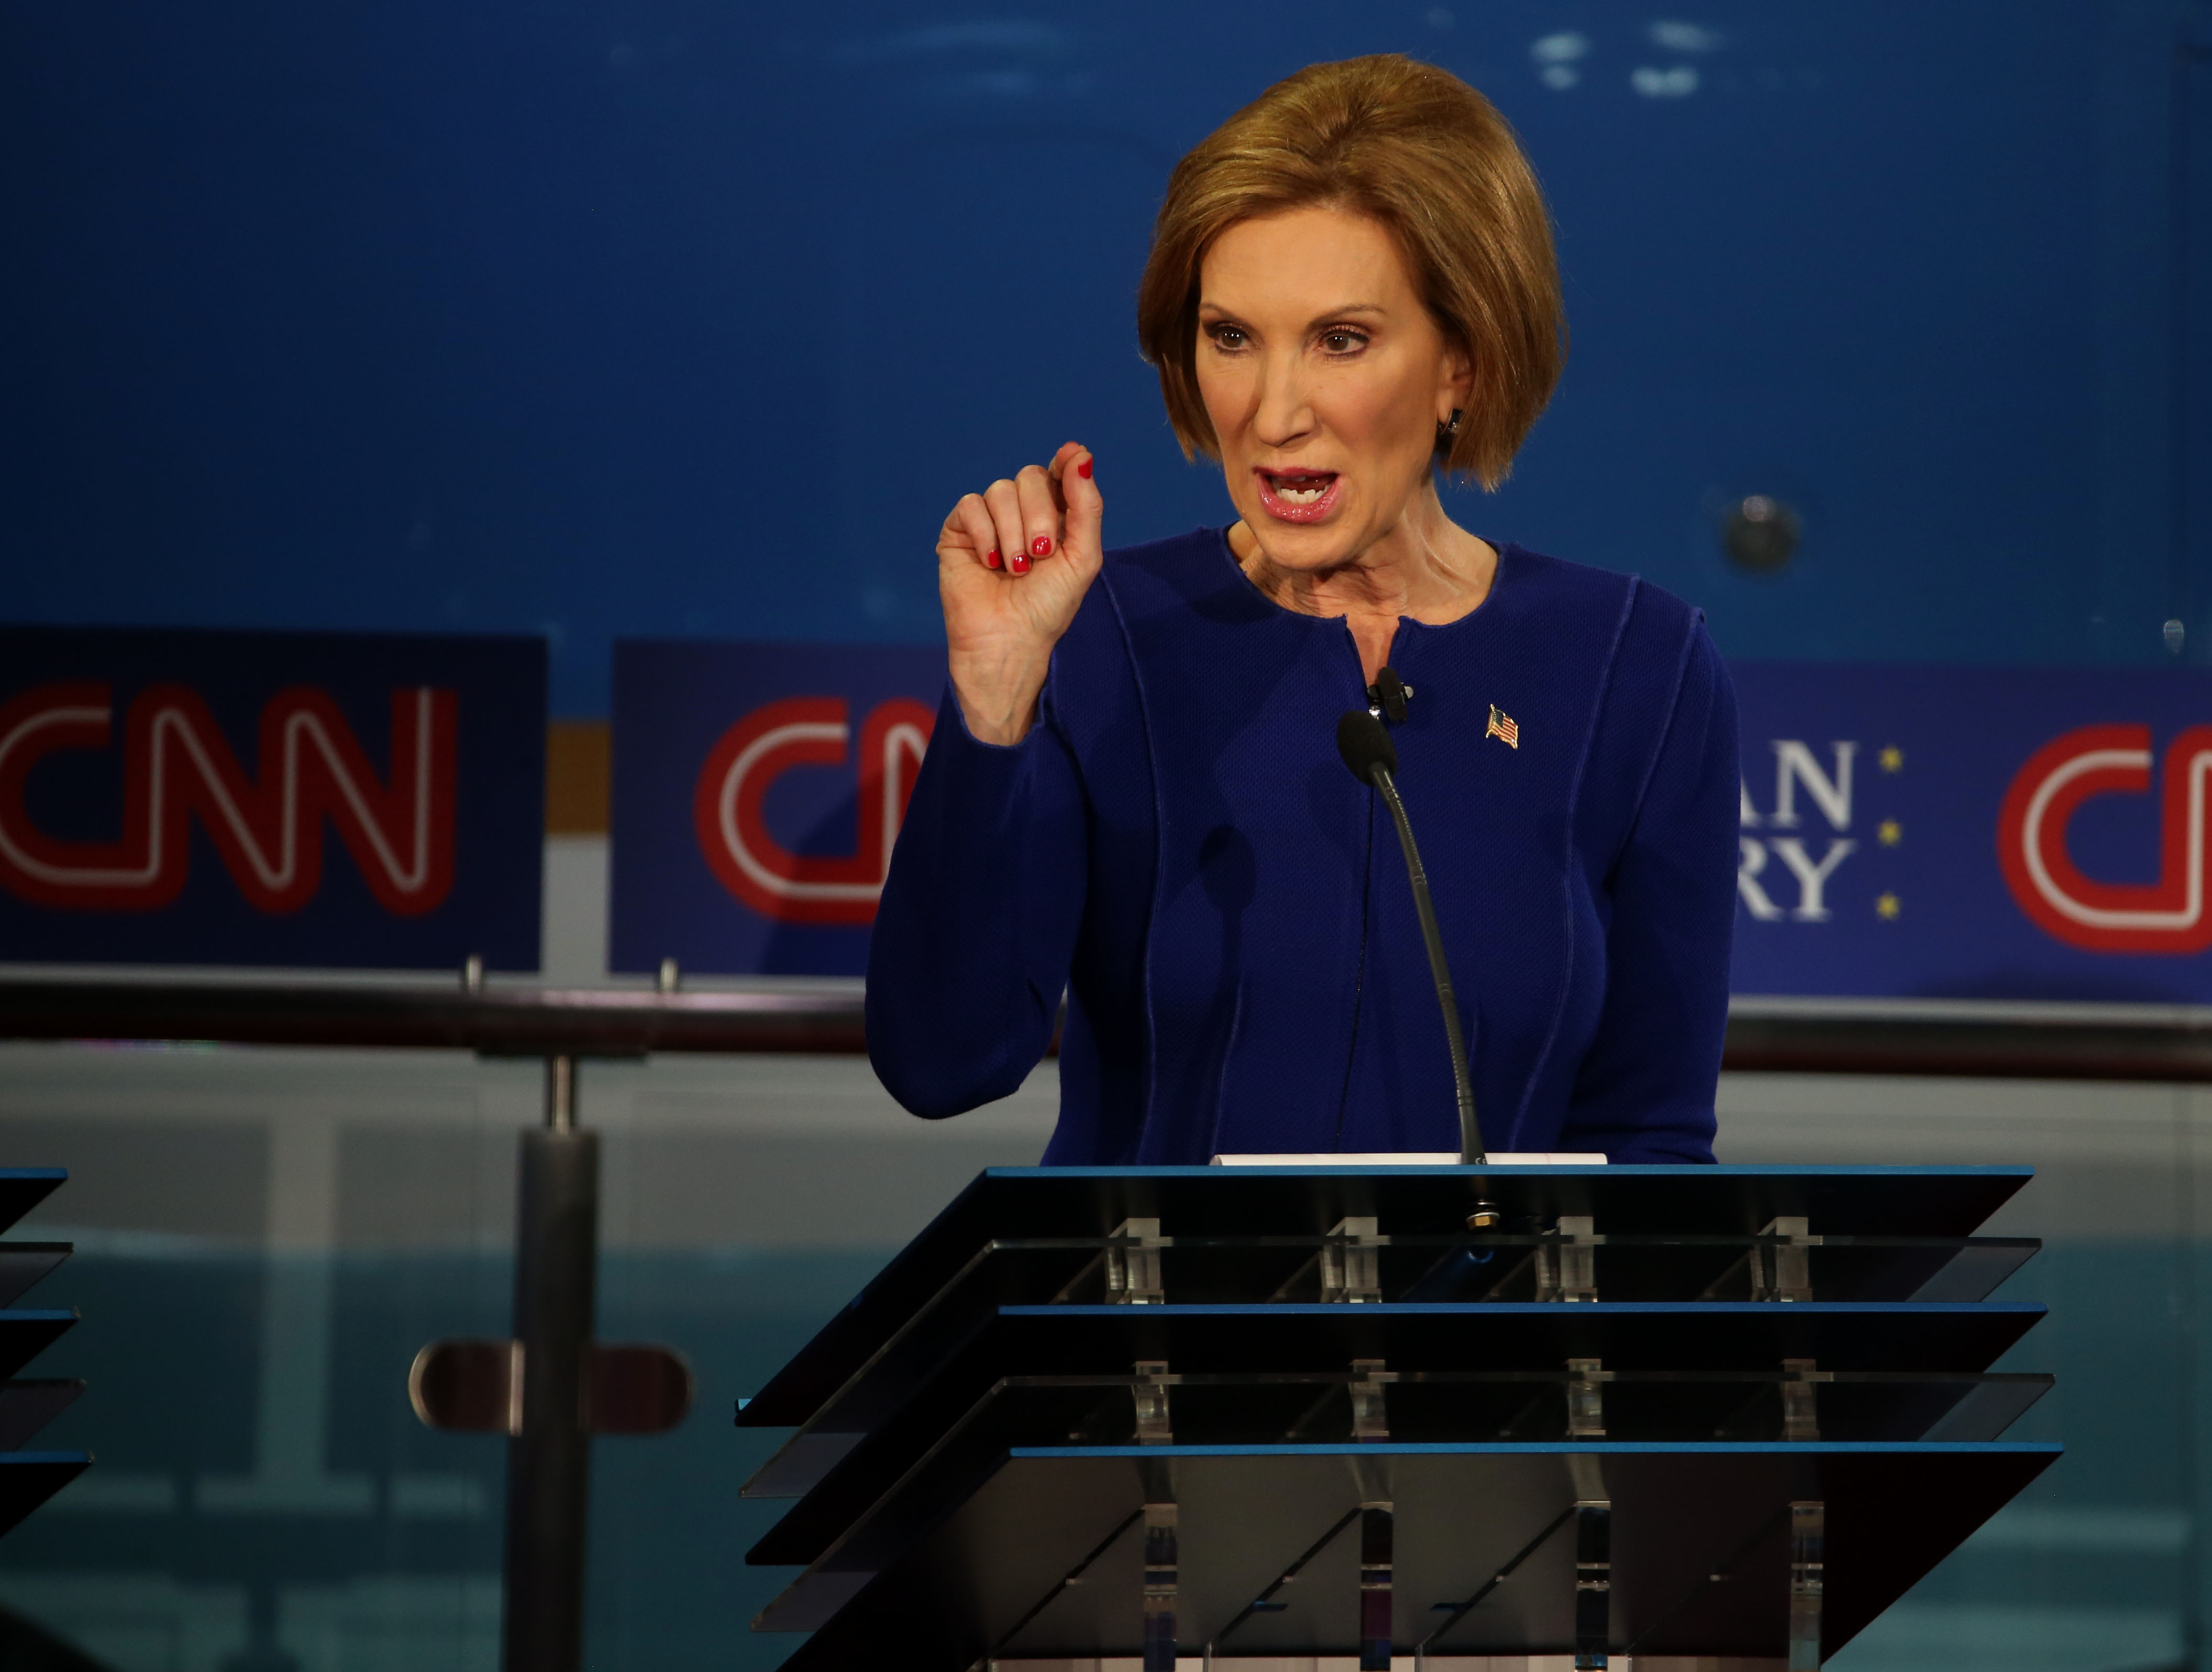 Republican presidential candidate  Carly Fiorina takes part in the presidential debates at the Reagan Library in Simi Valley, California on Sept. 16, 2015.